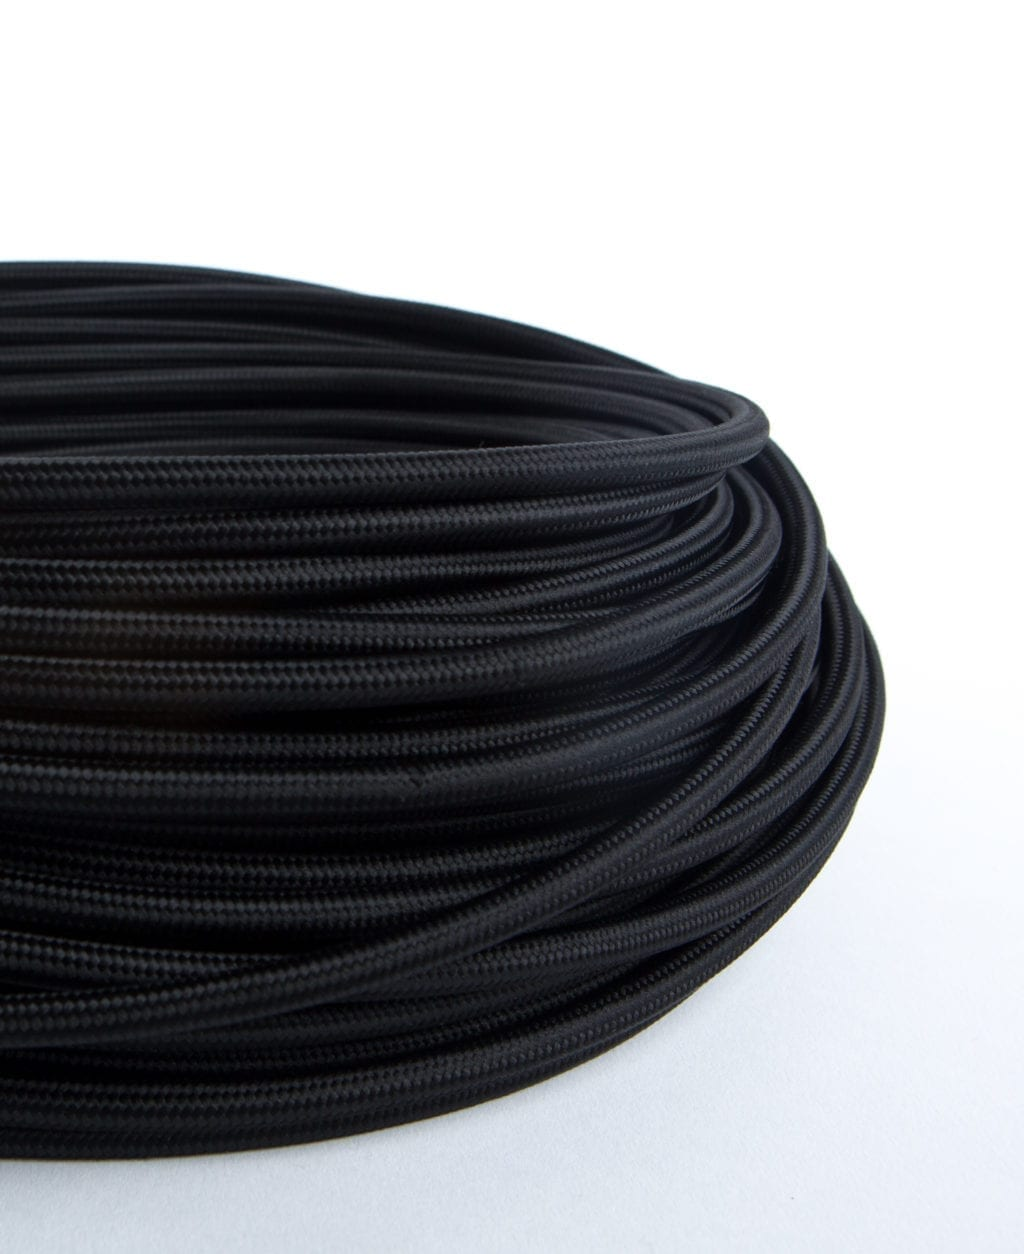 closeup of black fabric cable coil against white background